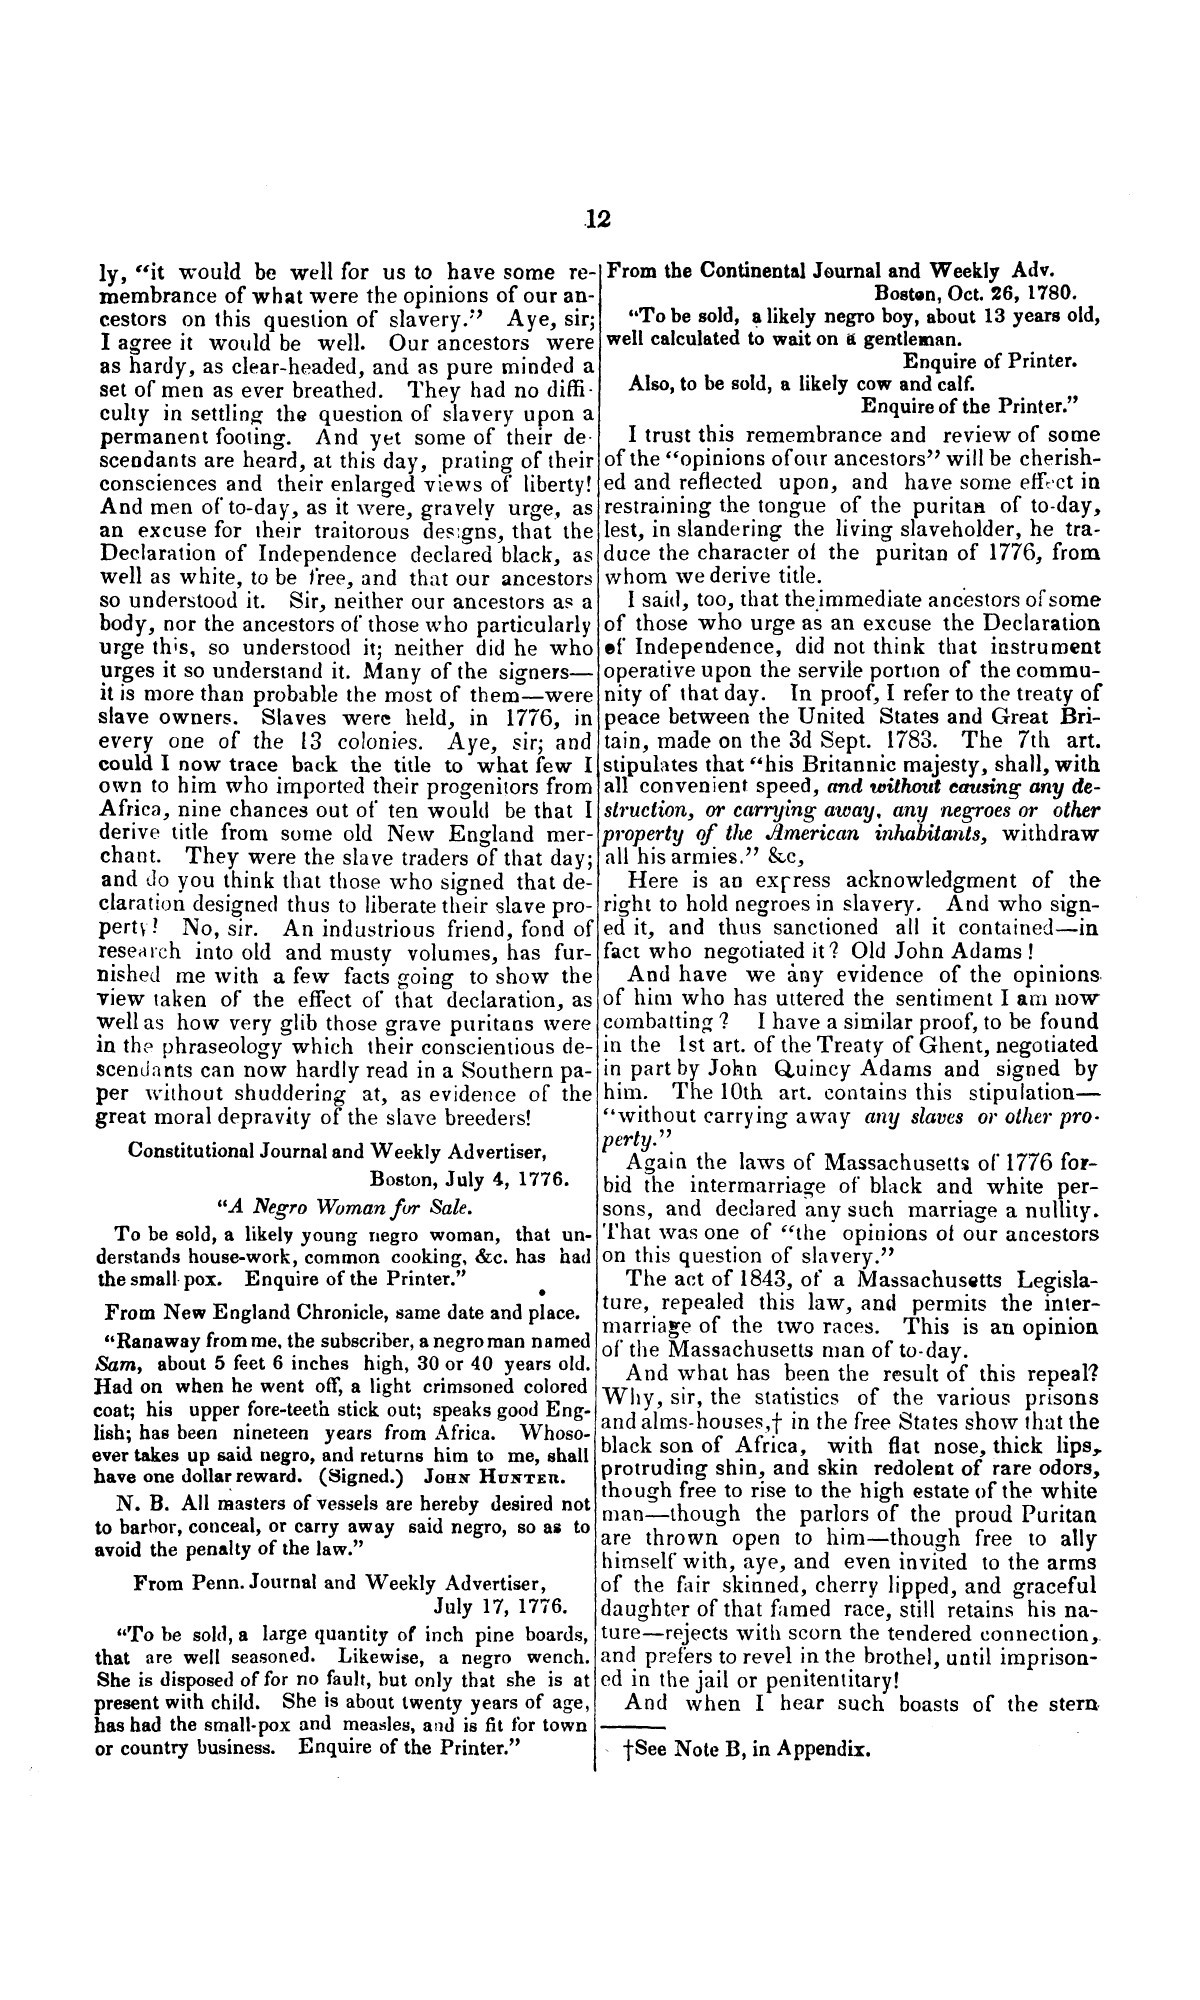 Speech of Hon. Wm. Lowndes Yancey, of Alabama, on the annexation of Texas to the United States, delivered in the House of Representatives, Jan. 7, 1845.                                                                                                      [Sequence #]: 12 of 14